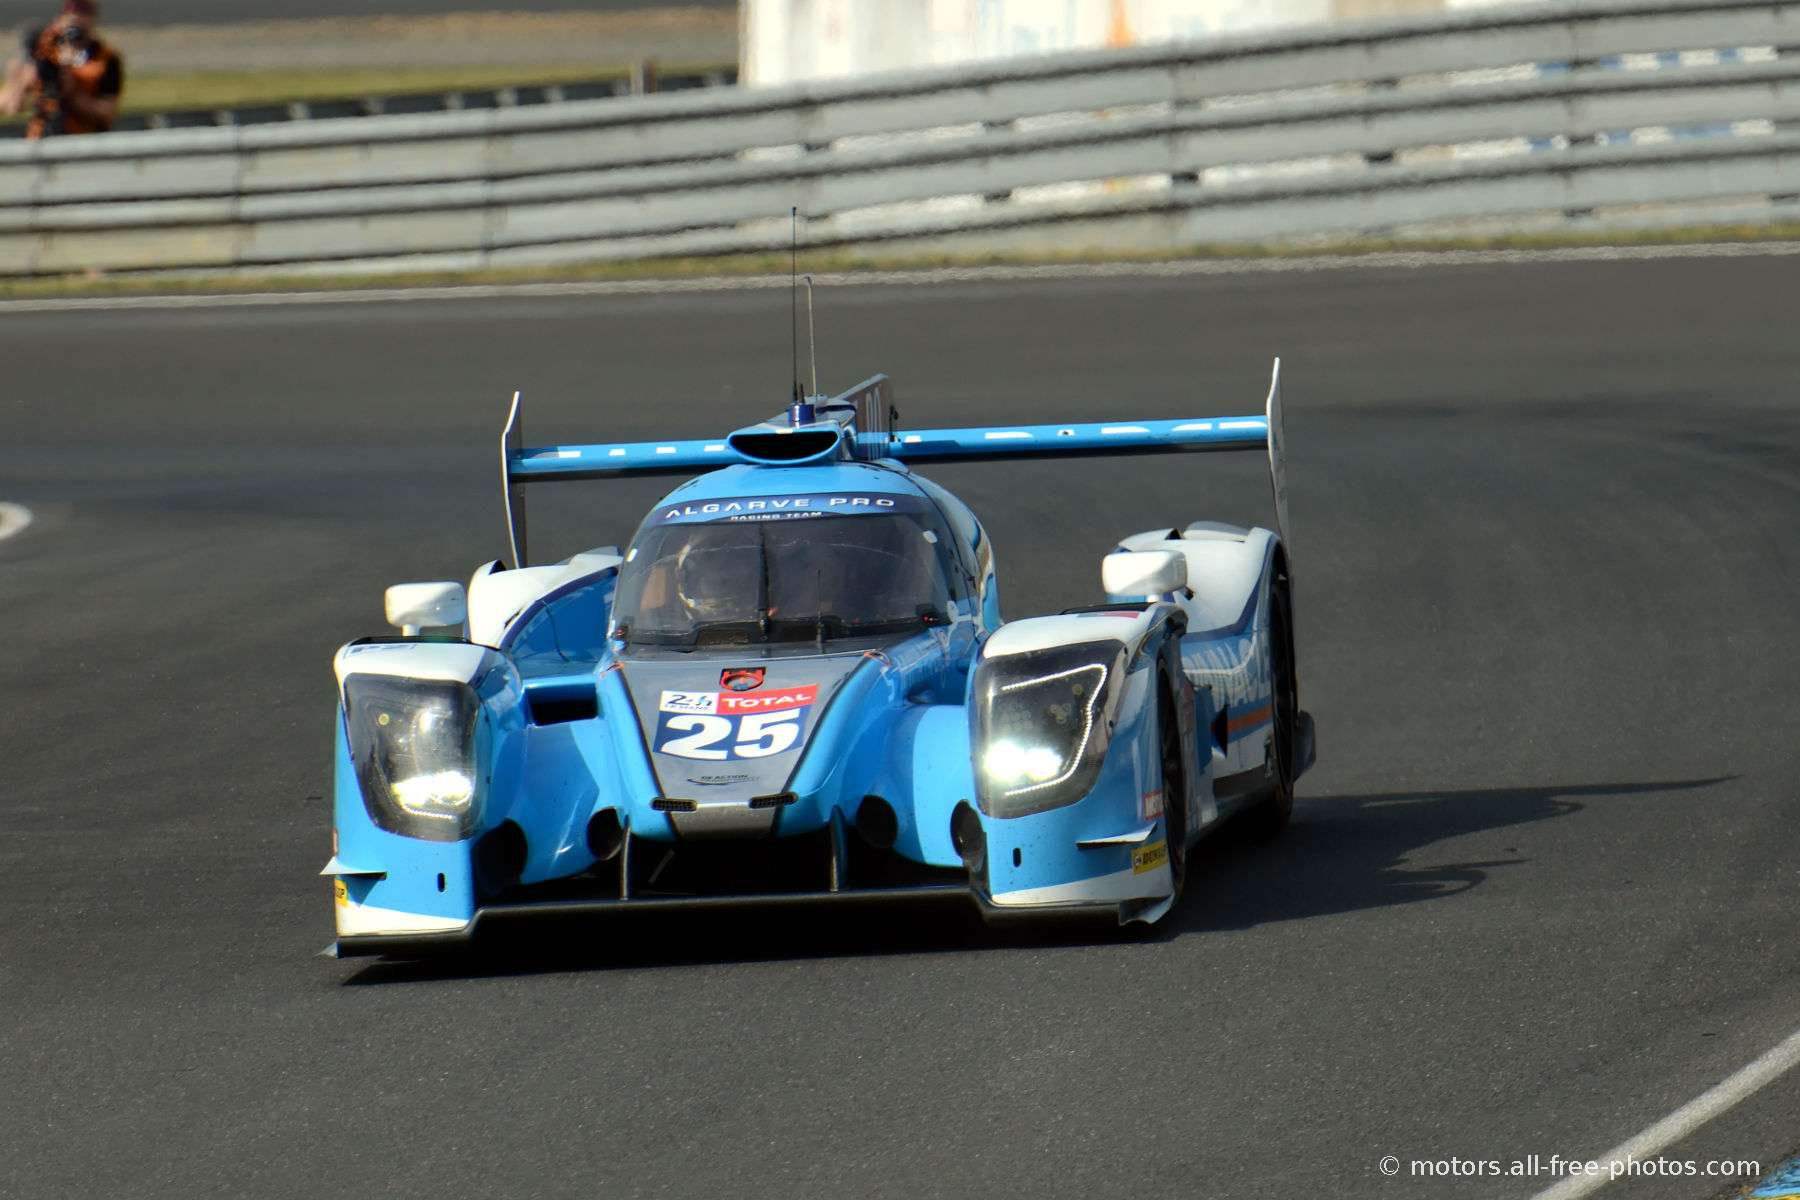 Ligier JSP217-Gibson - Team Algarve Pro Racing